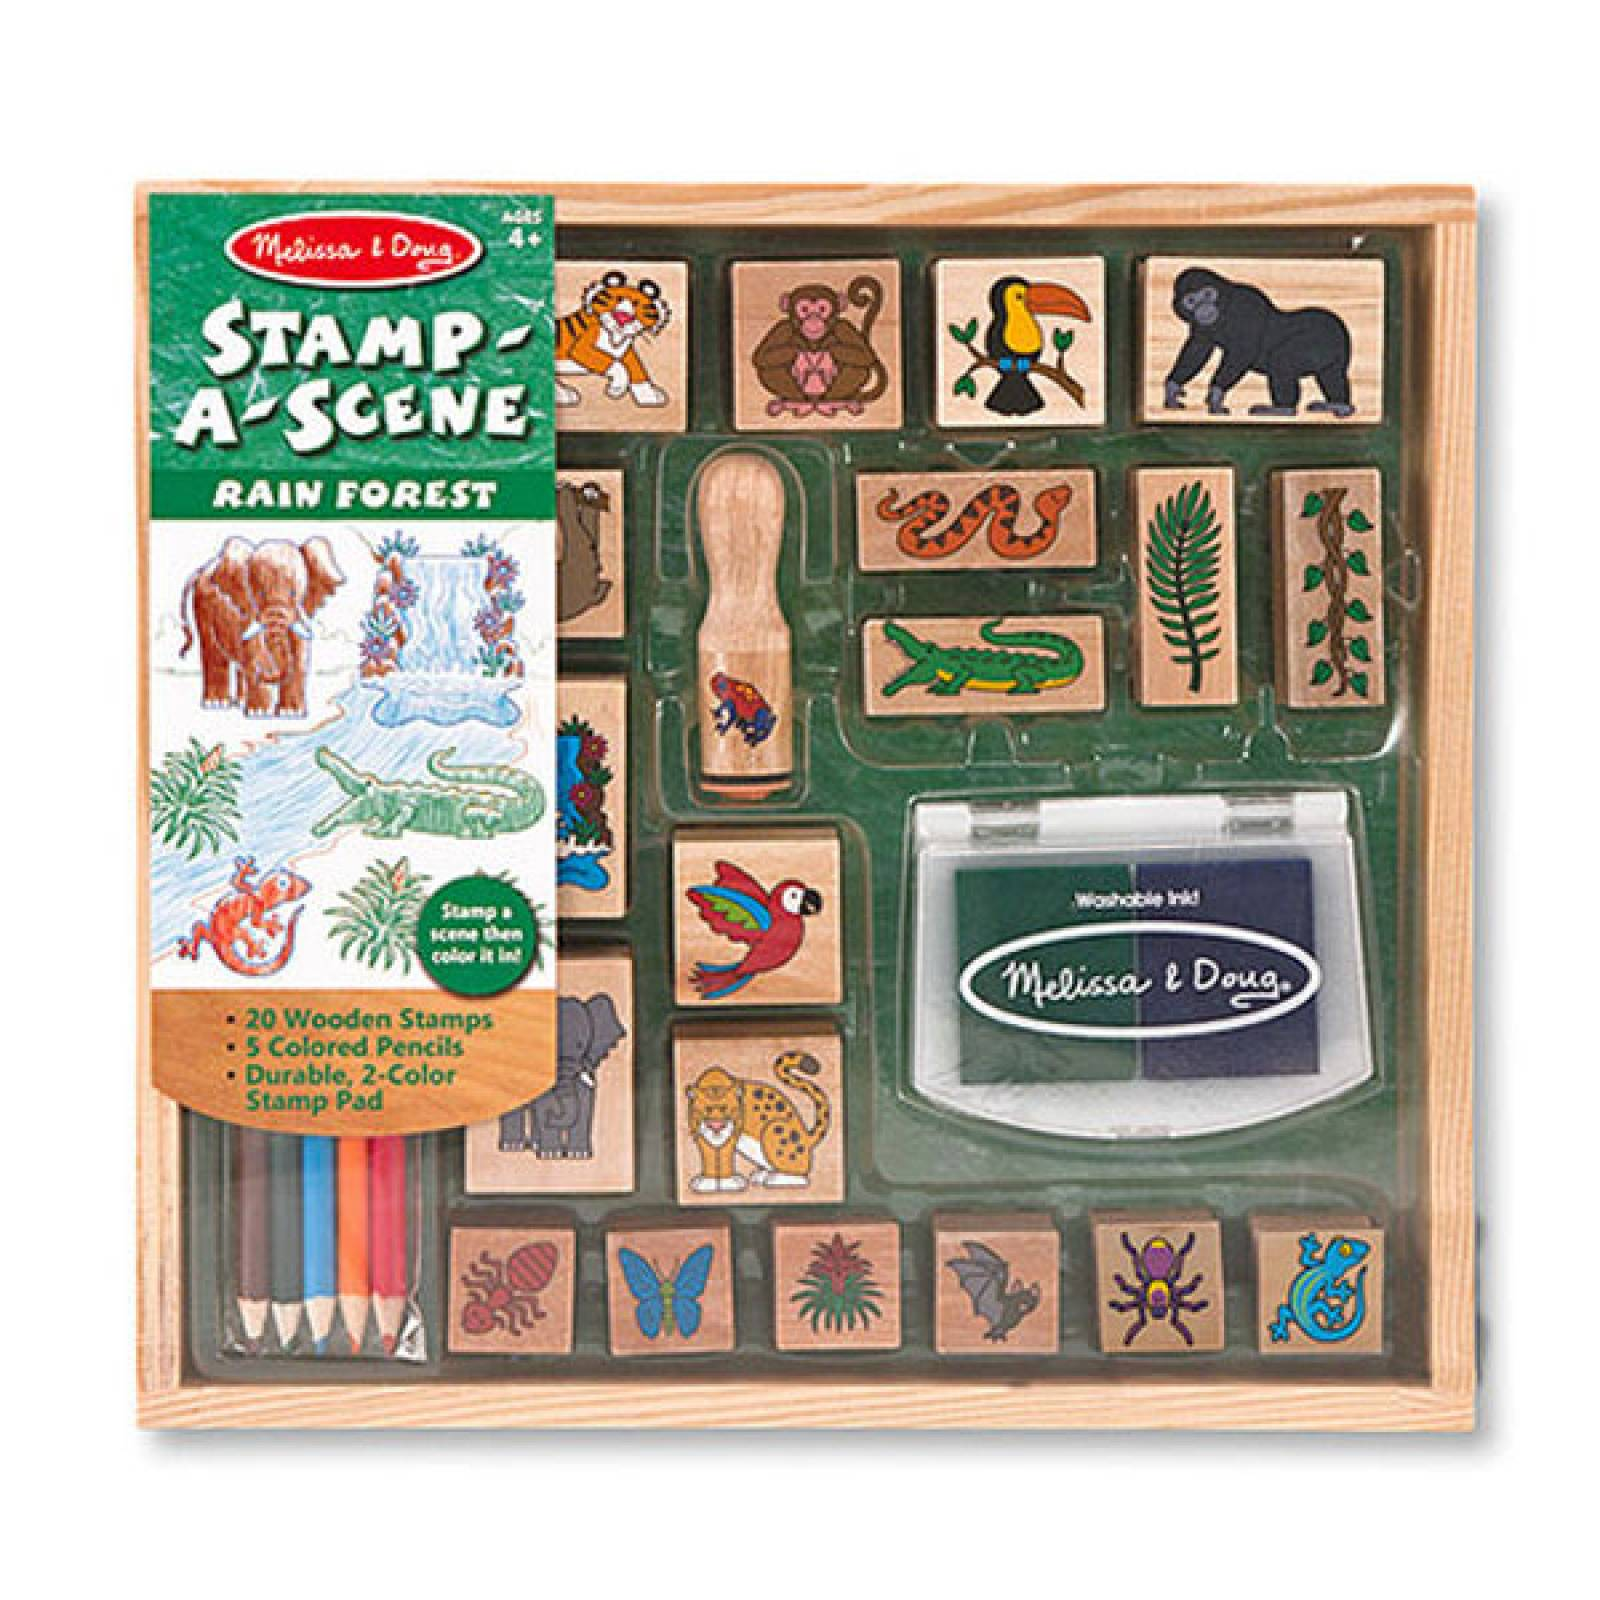 Stamp-a-Scene Set - Rain Forest 4+ thumbnails